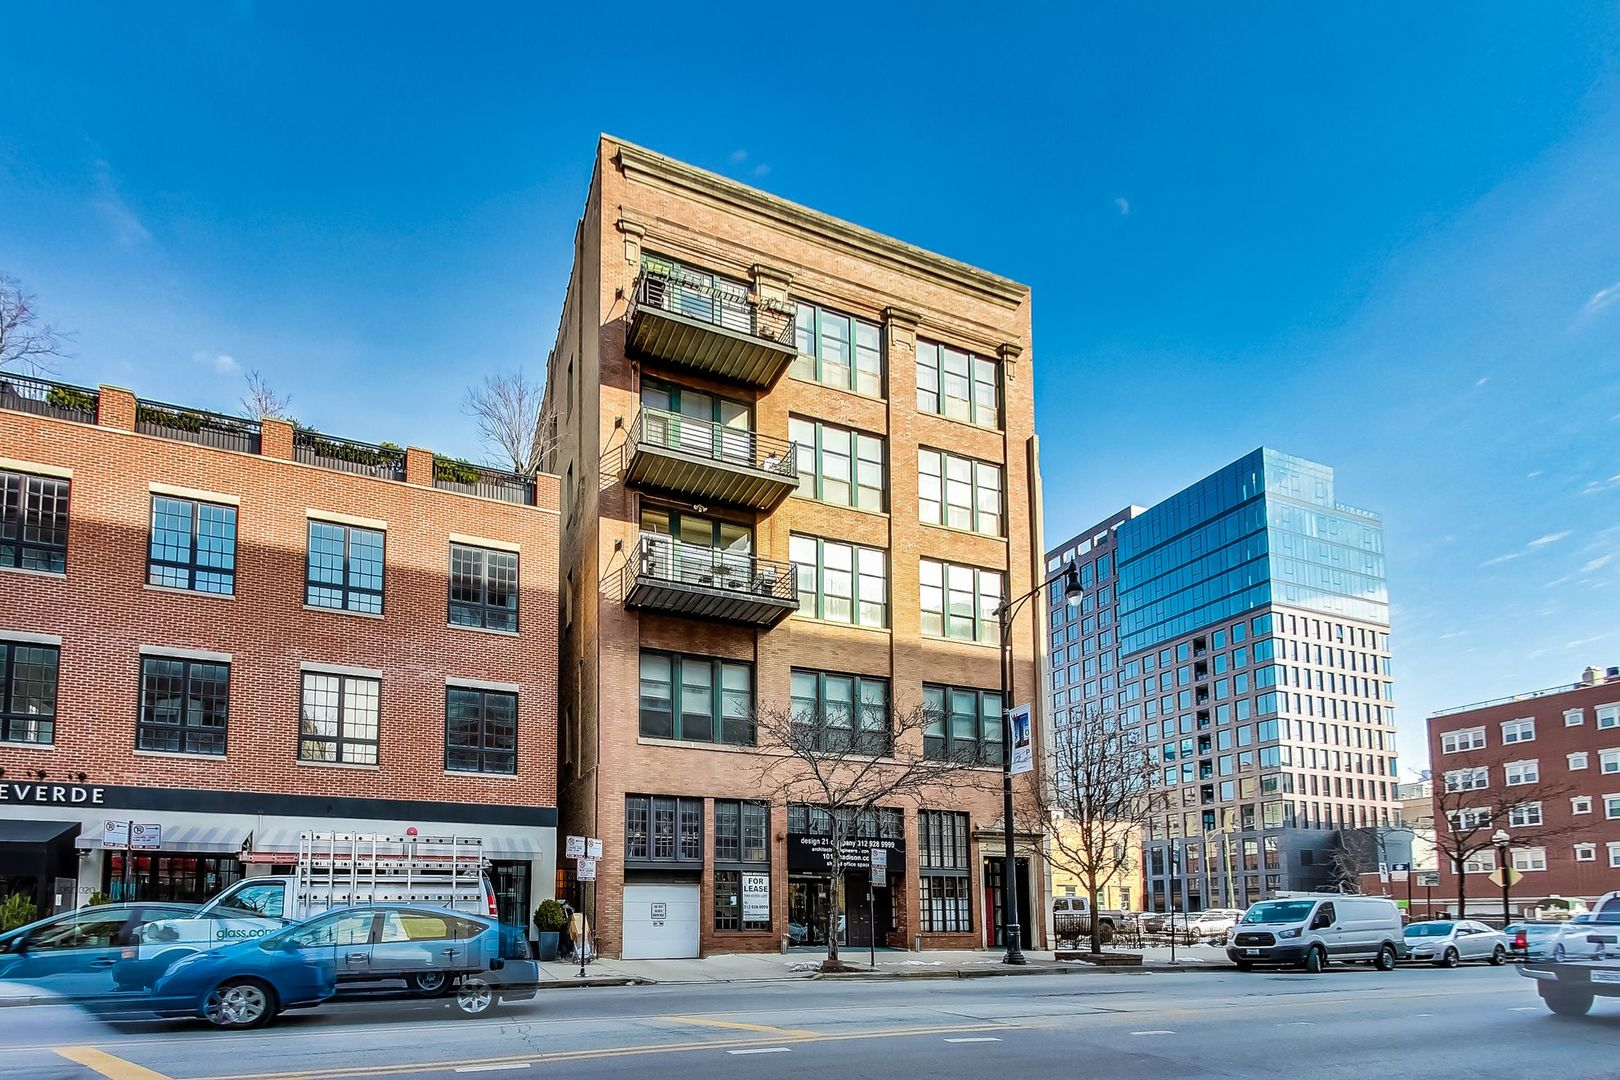 Beautifully updated 3 bedroom/2 full bath condo in the Heart of the West Loop! Located in a boutique